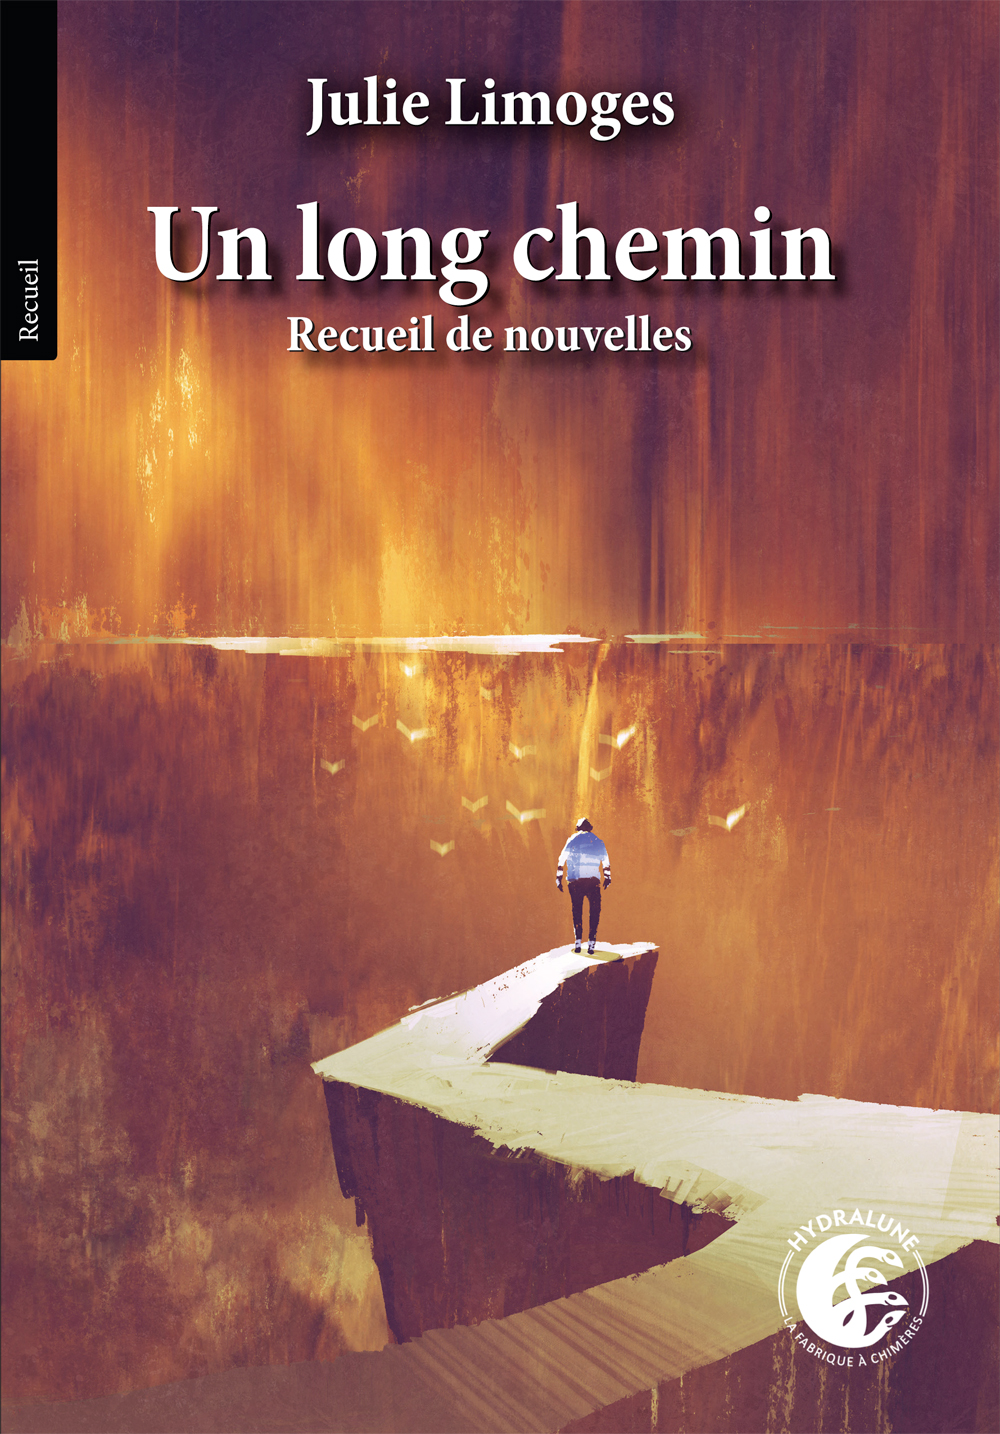 Version numérique d'Un long chemin disponible